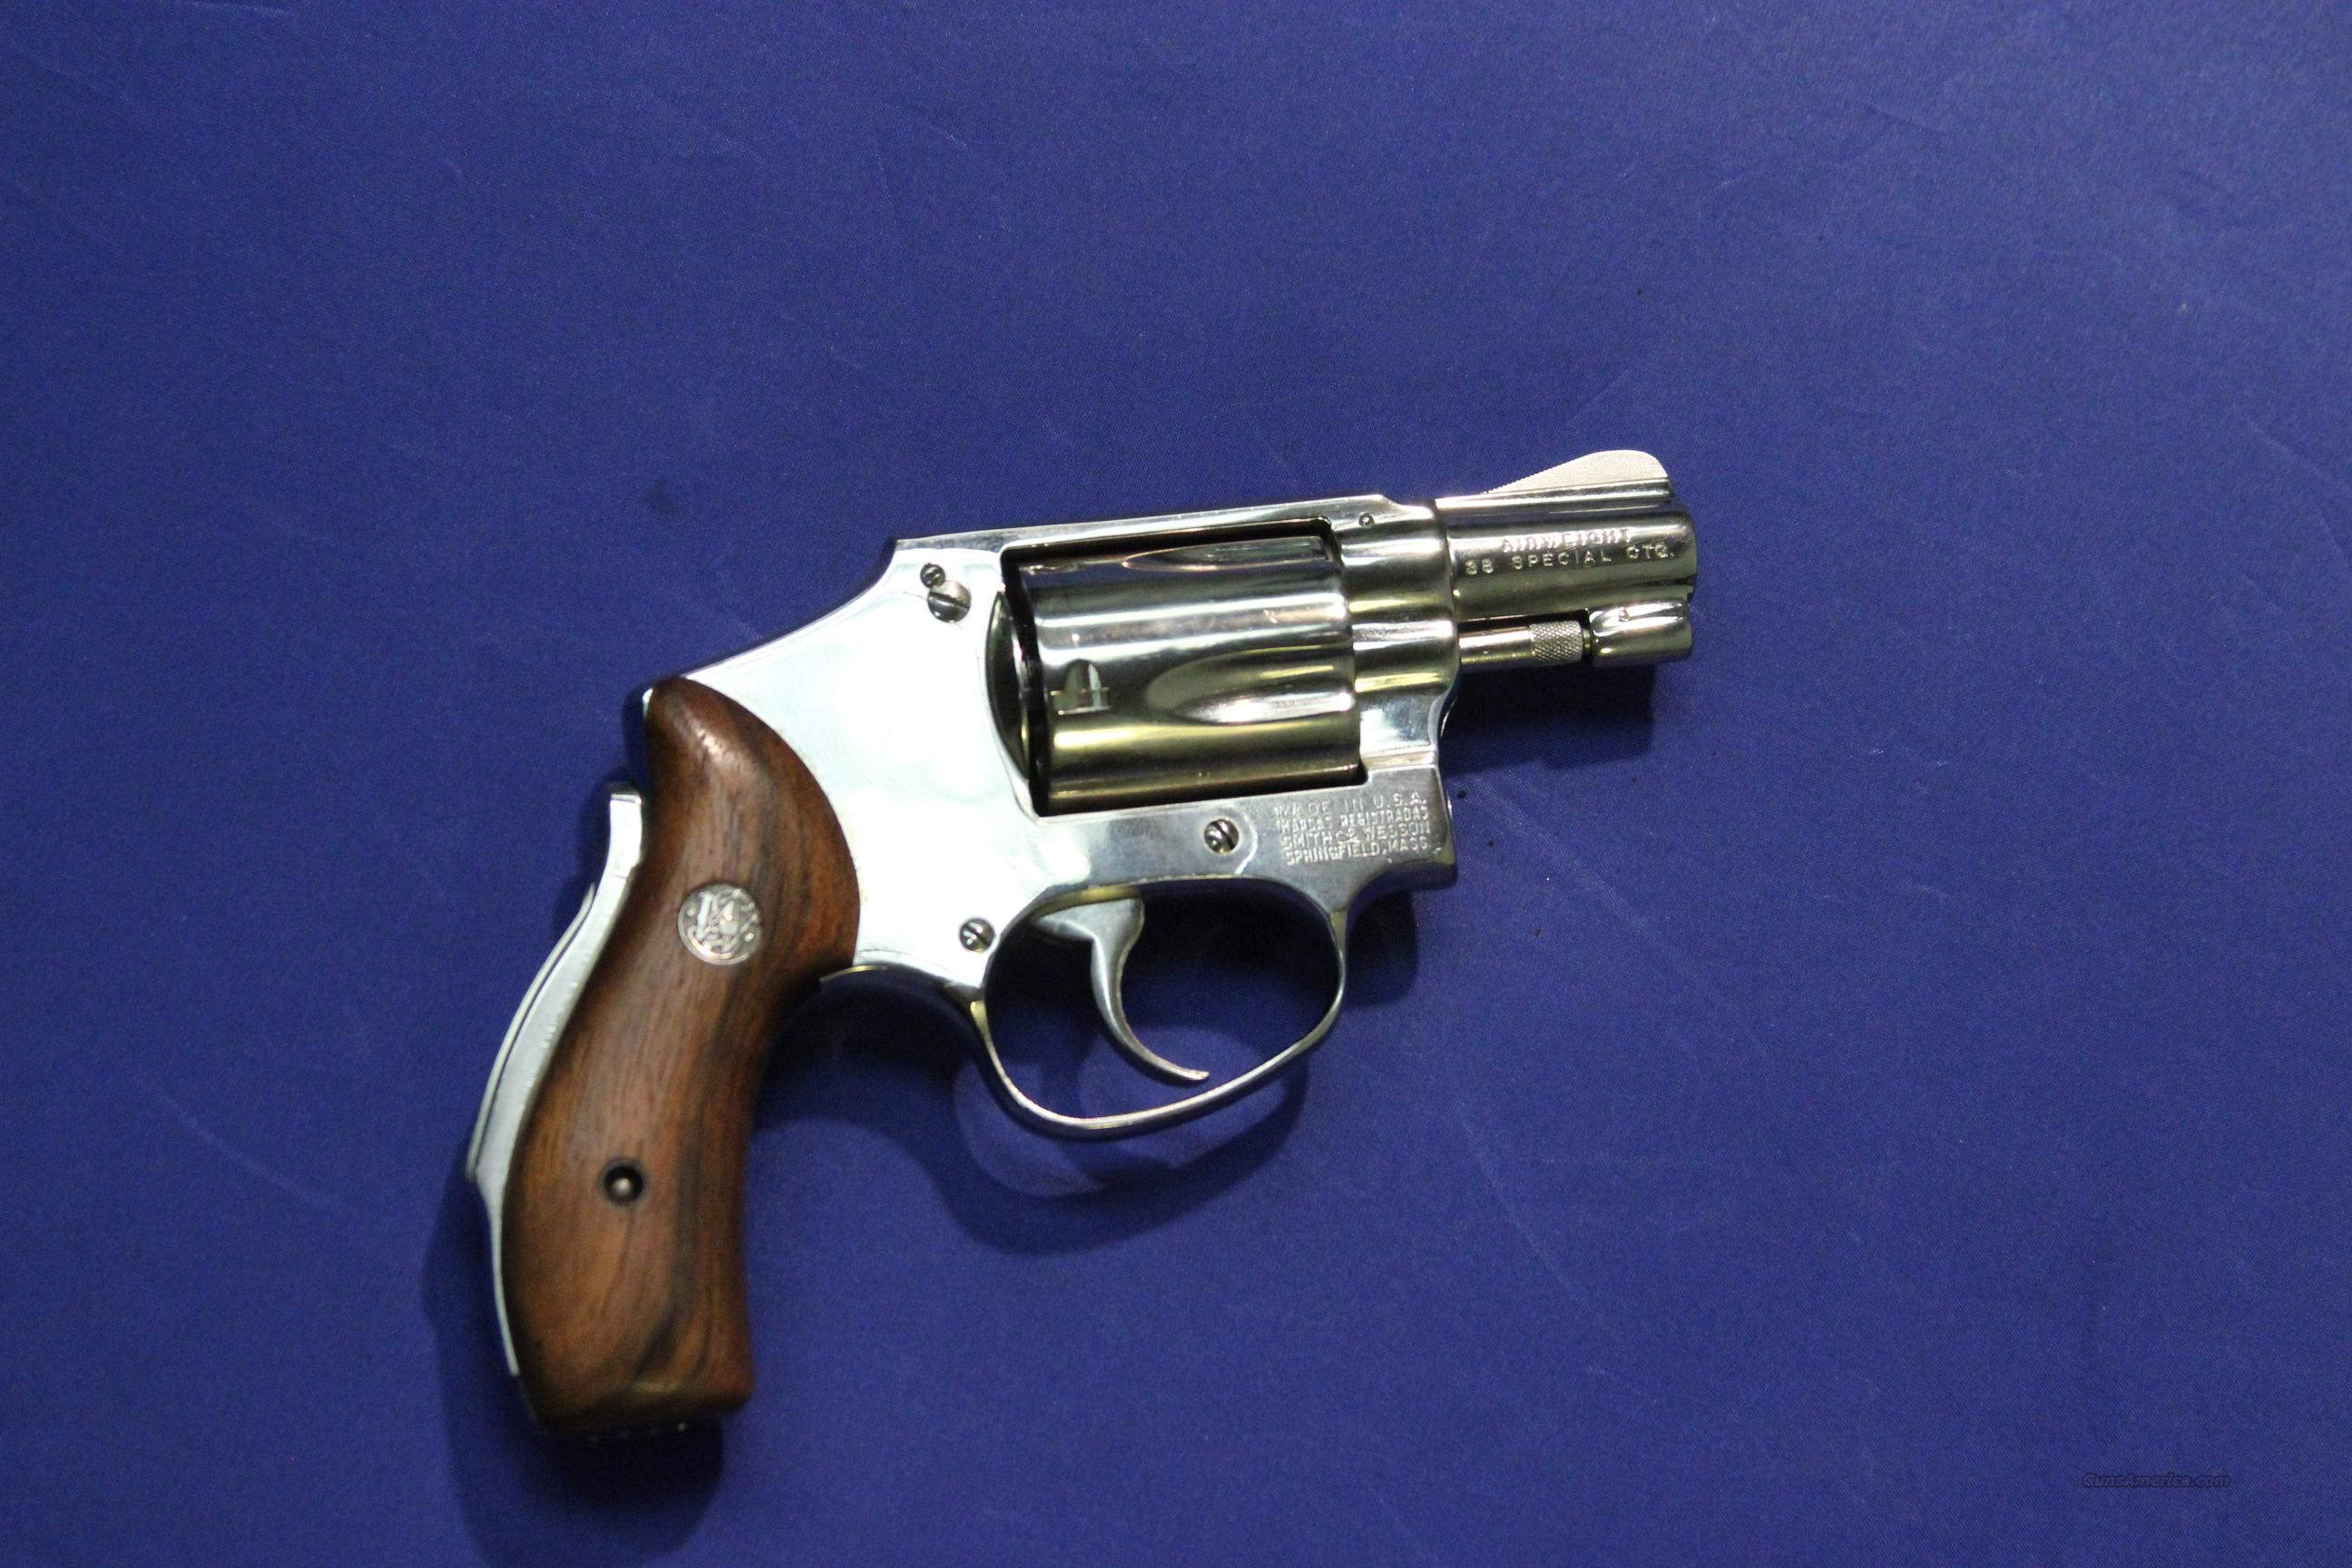 SMITH & WESSON SAFETY HAMMERLESS AIRWEIGHT NICKEL .38 SP  Guns > Pistols > Smith & Wesson Revolvers > Pocket Pistols